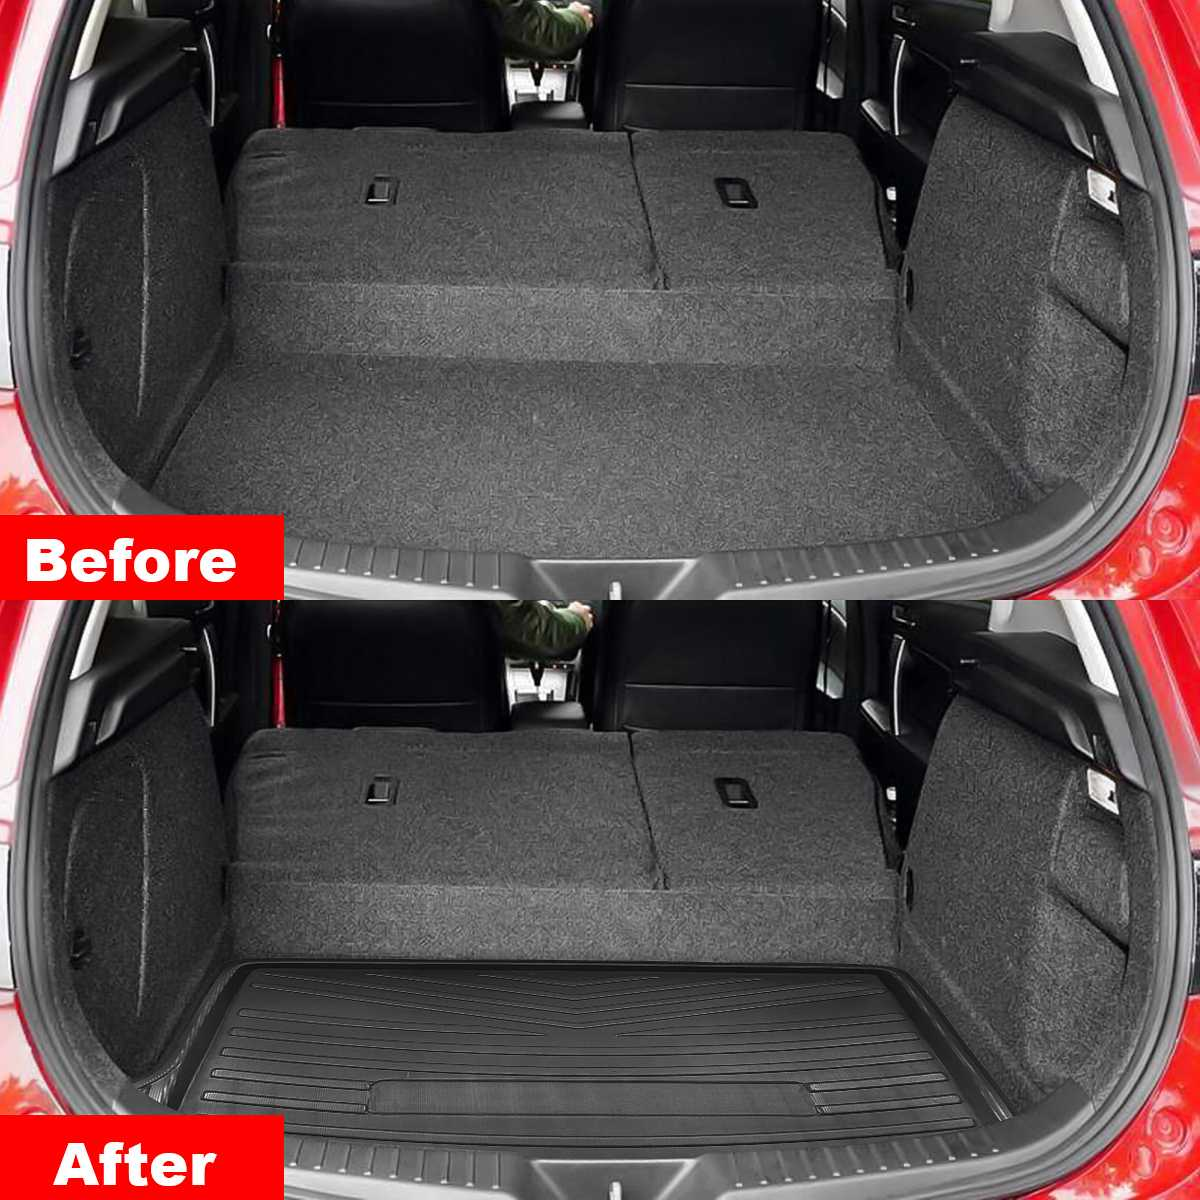 Car Rear Trunk Cargo Liner Boot Tray Cover Matt Mat Floor Carpet Kick Pad For Mazda 3 2014 2015 2016 2017 2018 Hatchback